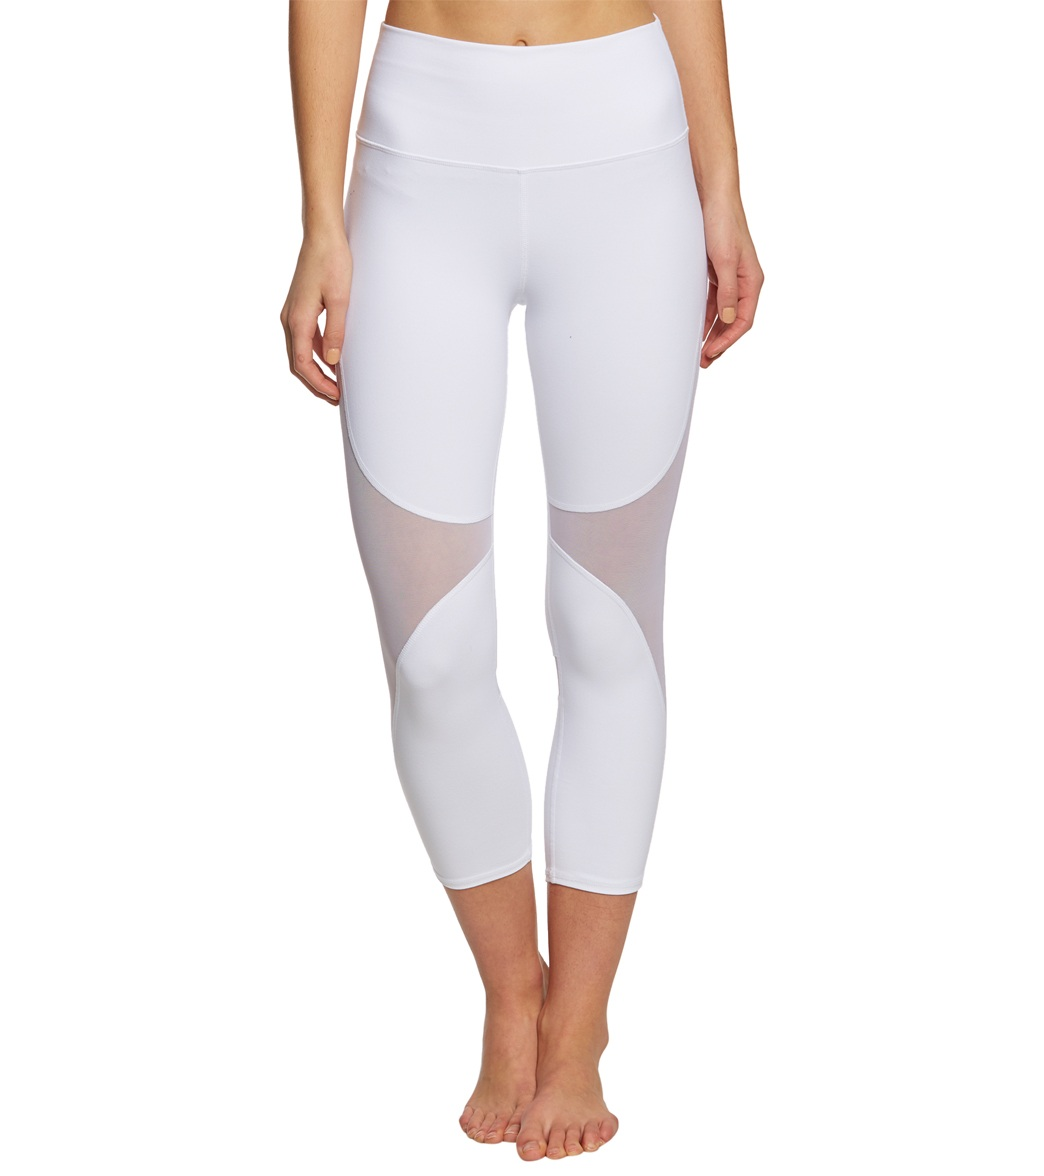 Alo Yoga High-Waist Coast Yoga Capris at YogaOutlet.com - Free ...